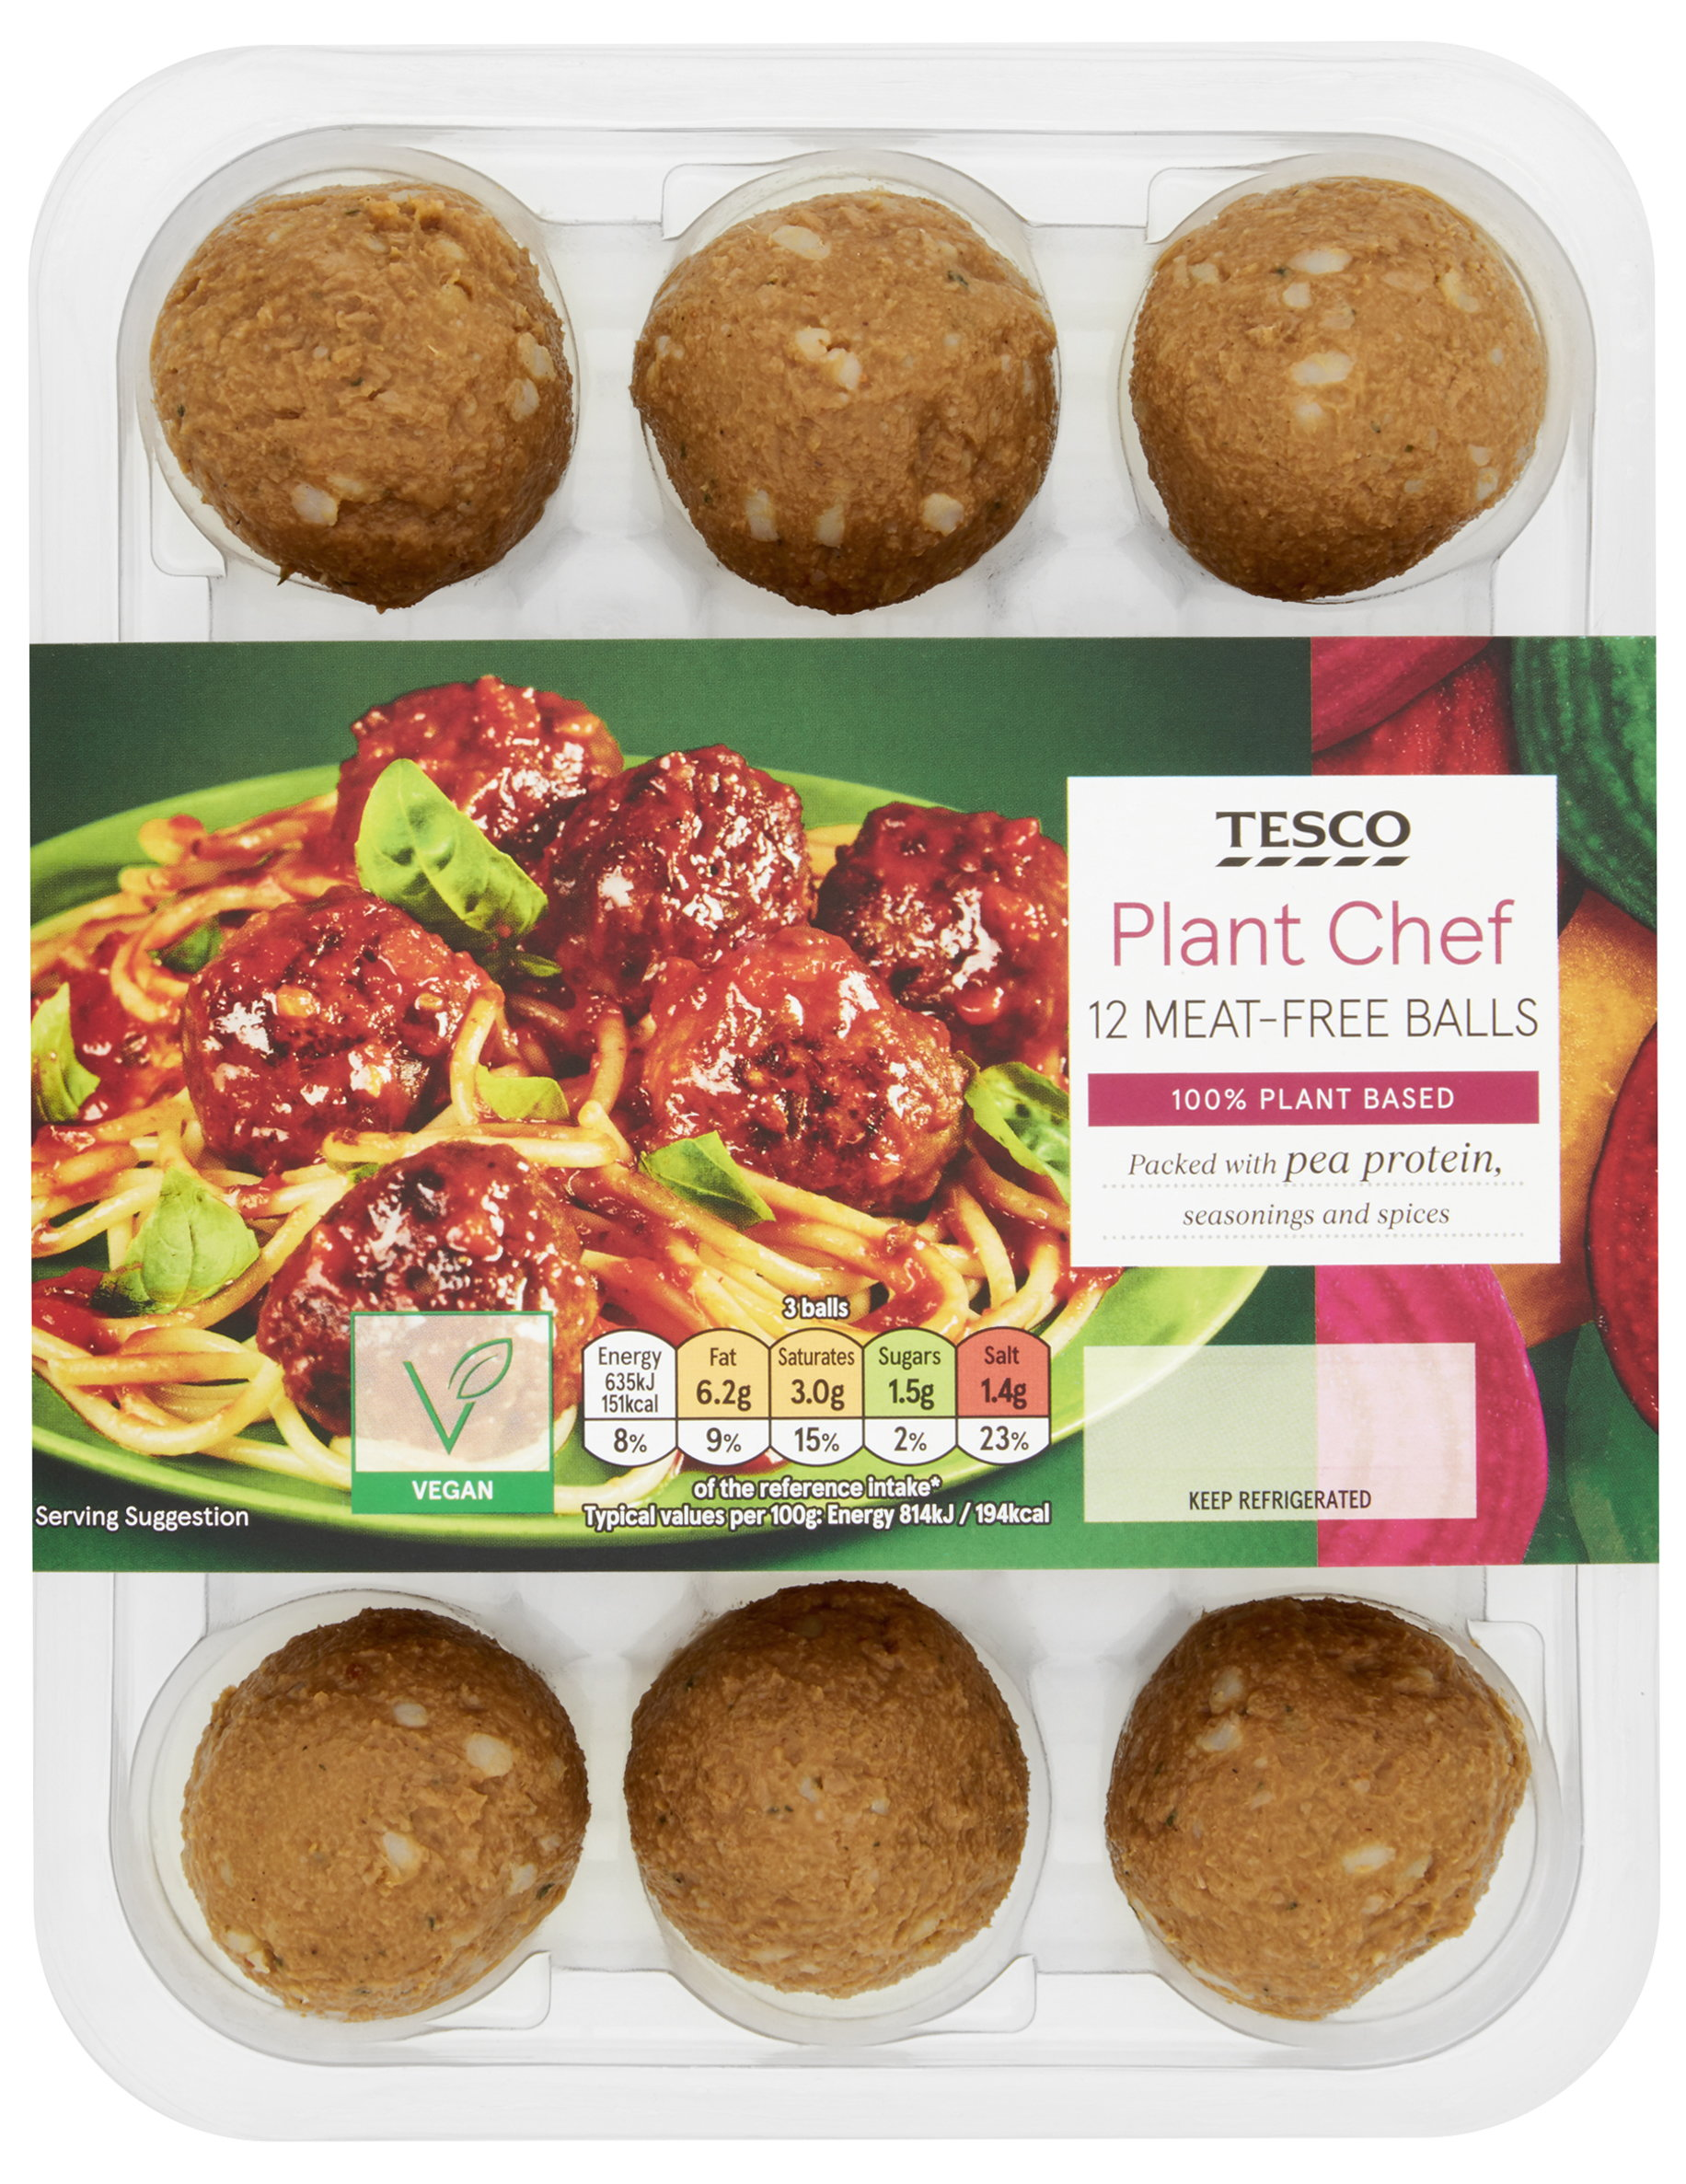 Tesco Plant Chef Meat-free BallsPacked with pea protein, seasonings and spices